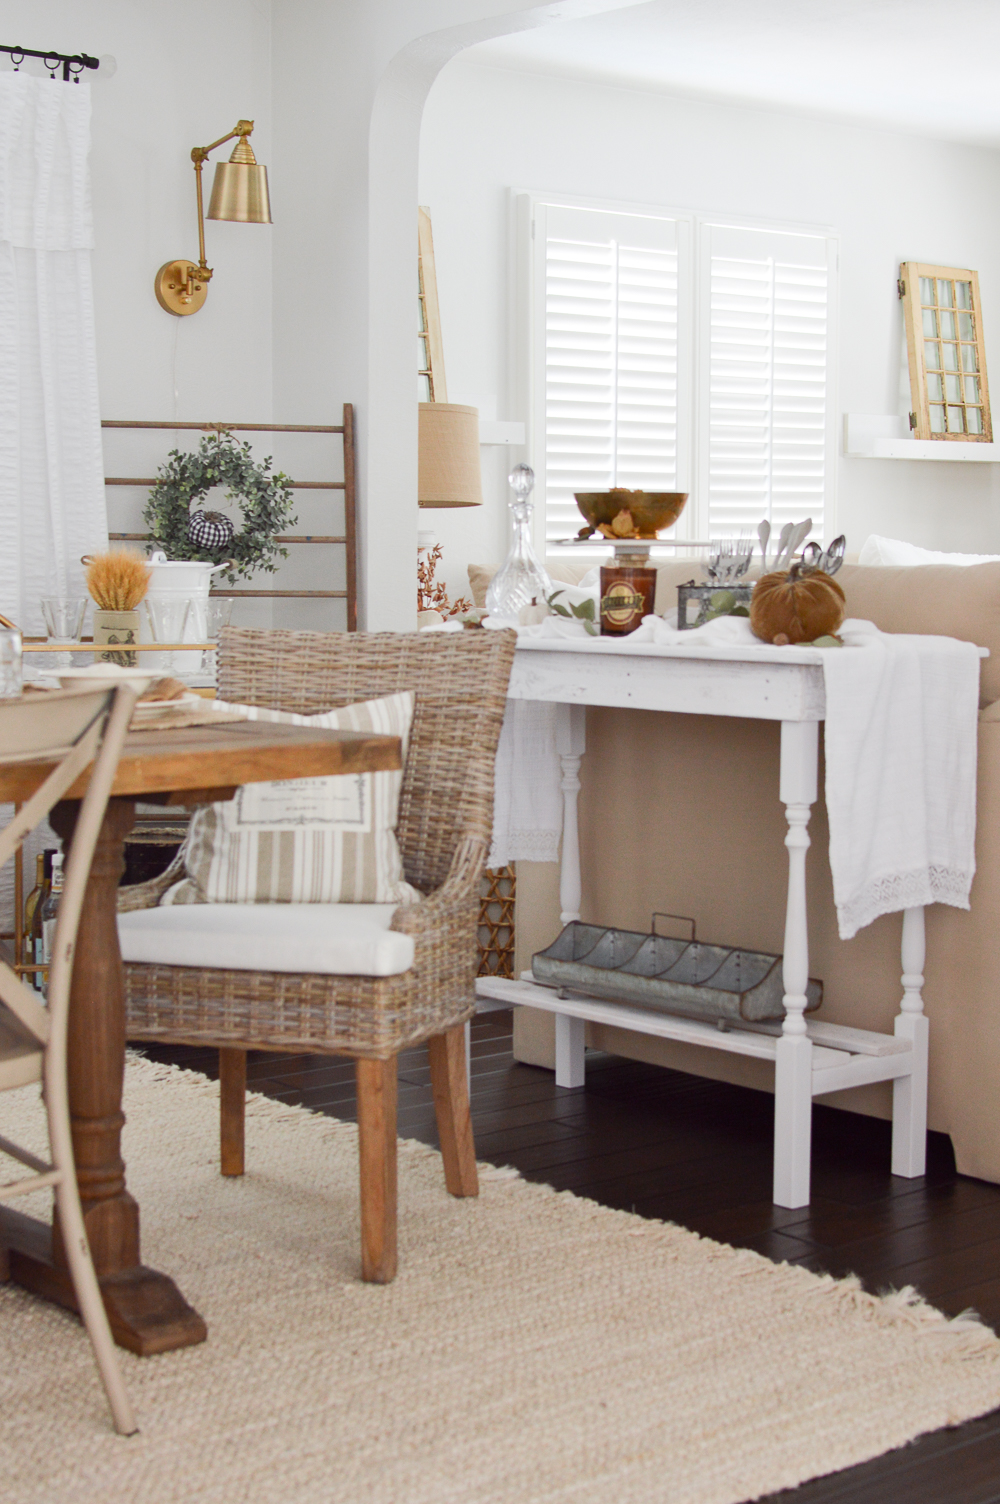 Simple, Neutral Fall Dining Room Decorating Ideas with Natural Elements, Texture and Neutral Colors.